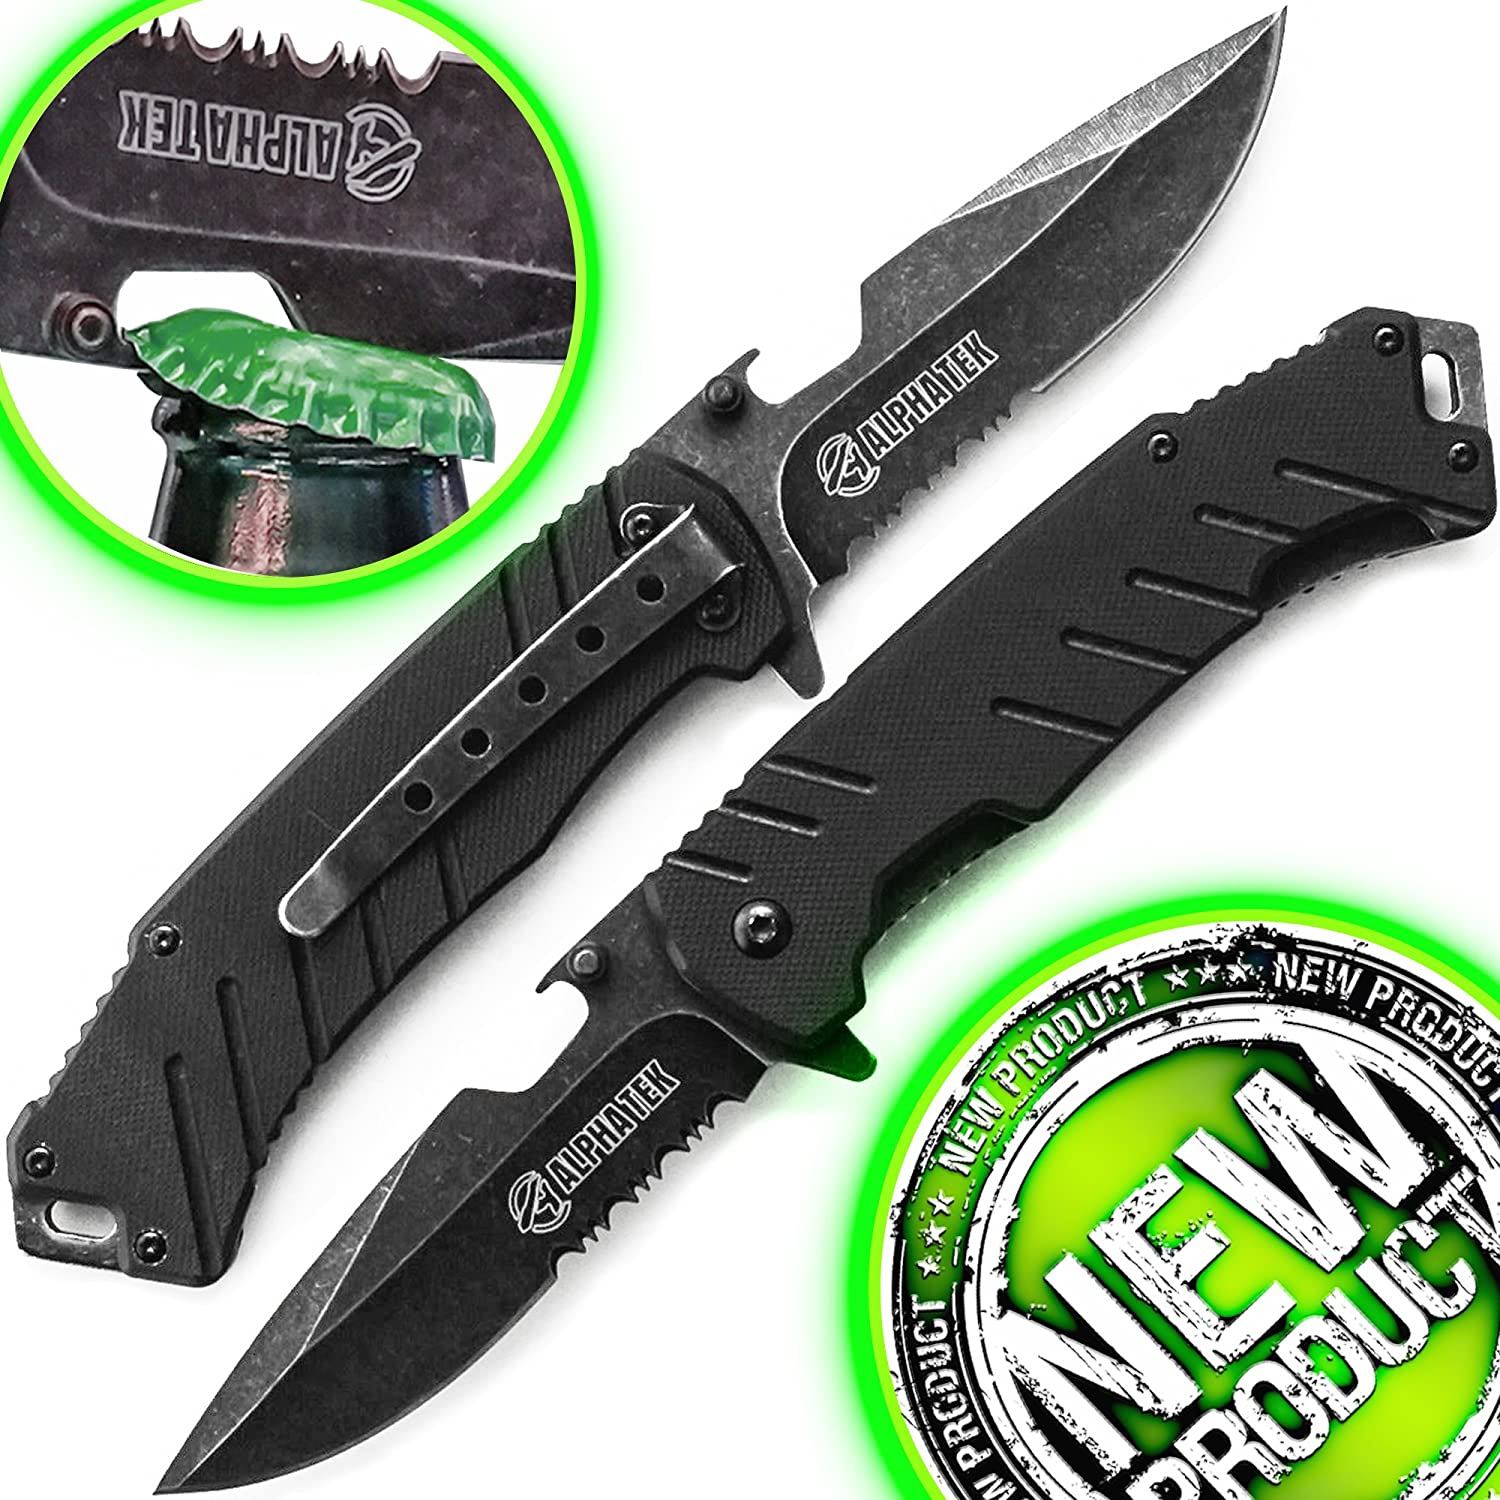 Spring Assisted Knife: Black Tactical Knife With Lightning Quick Deployment - BOTTLE OPENER - Black 440C SS Blade - G-10 Handle - Pocket Clip. рамка 4 местная черный